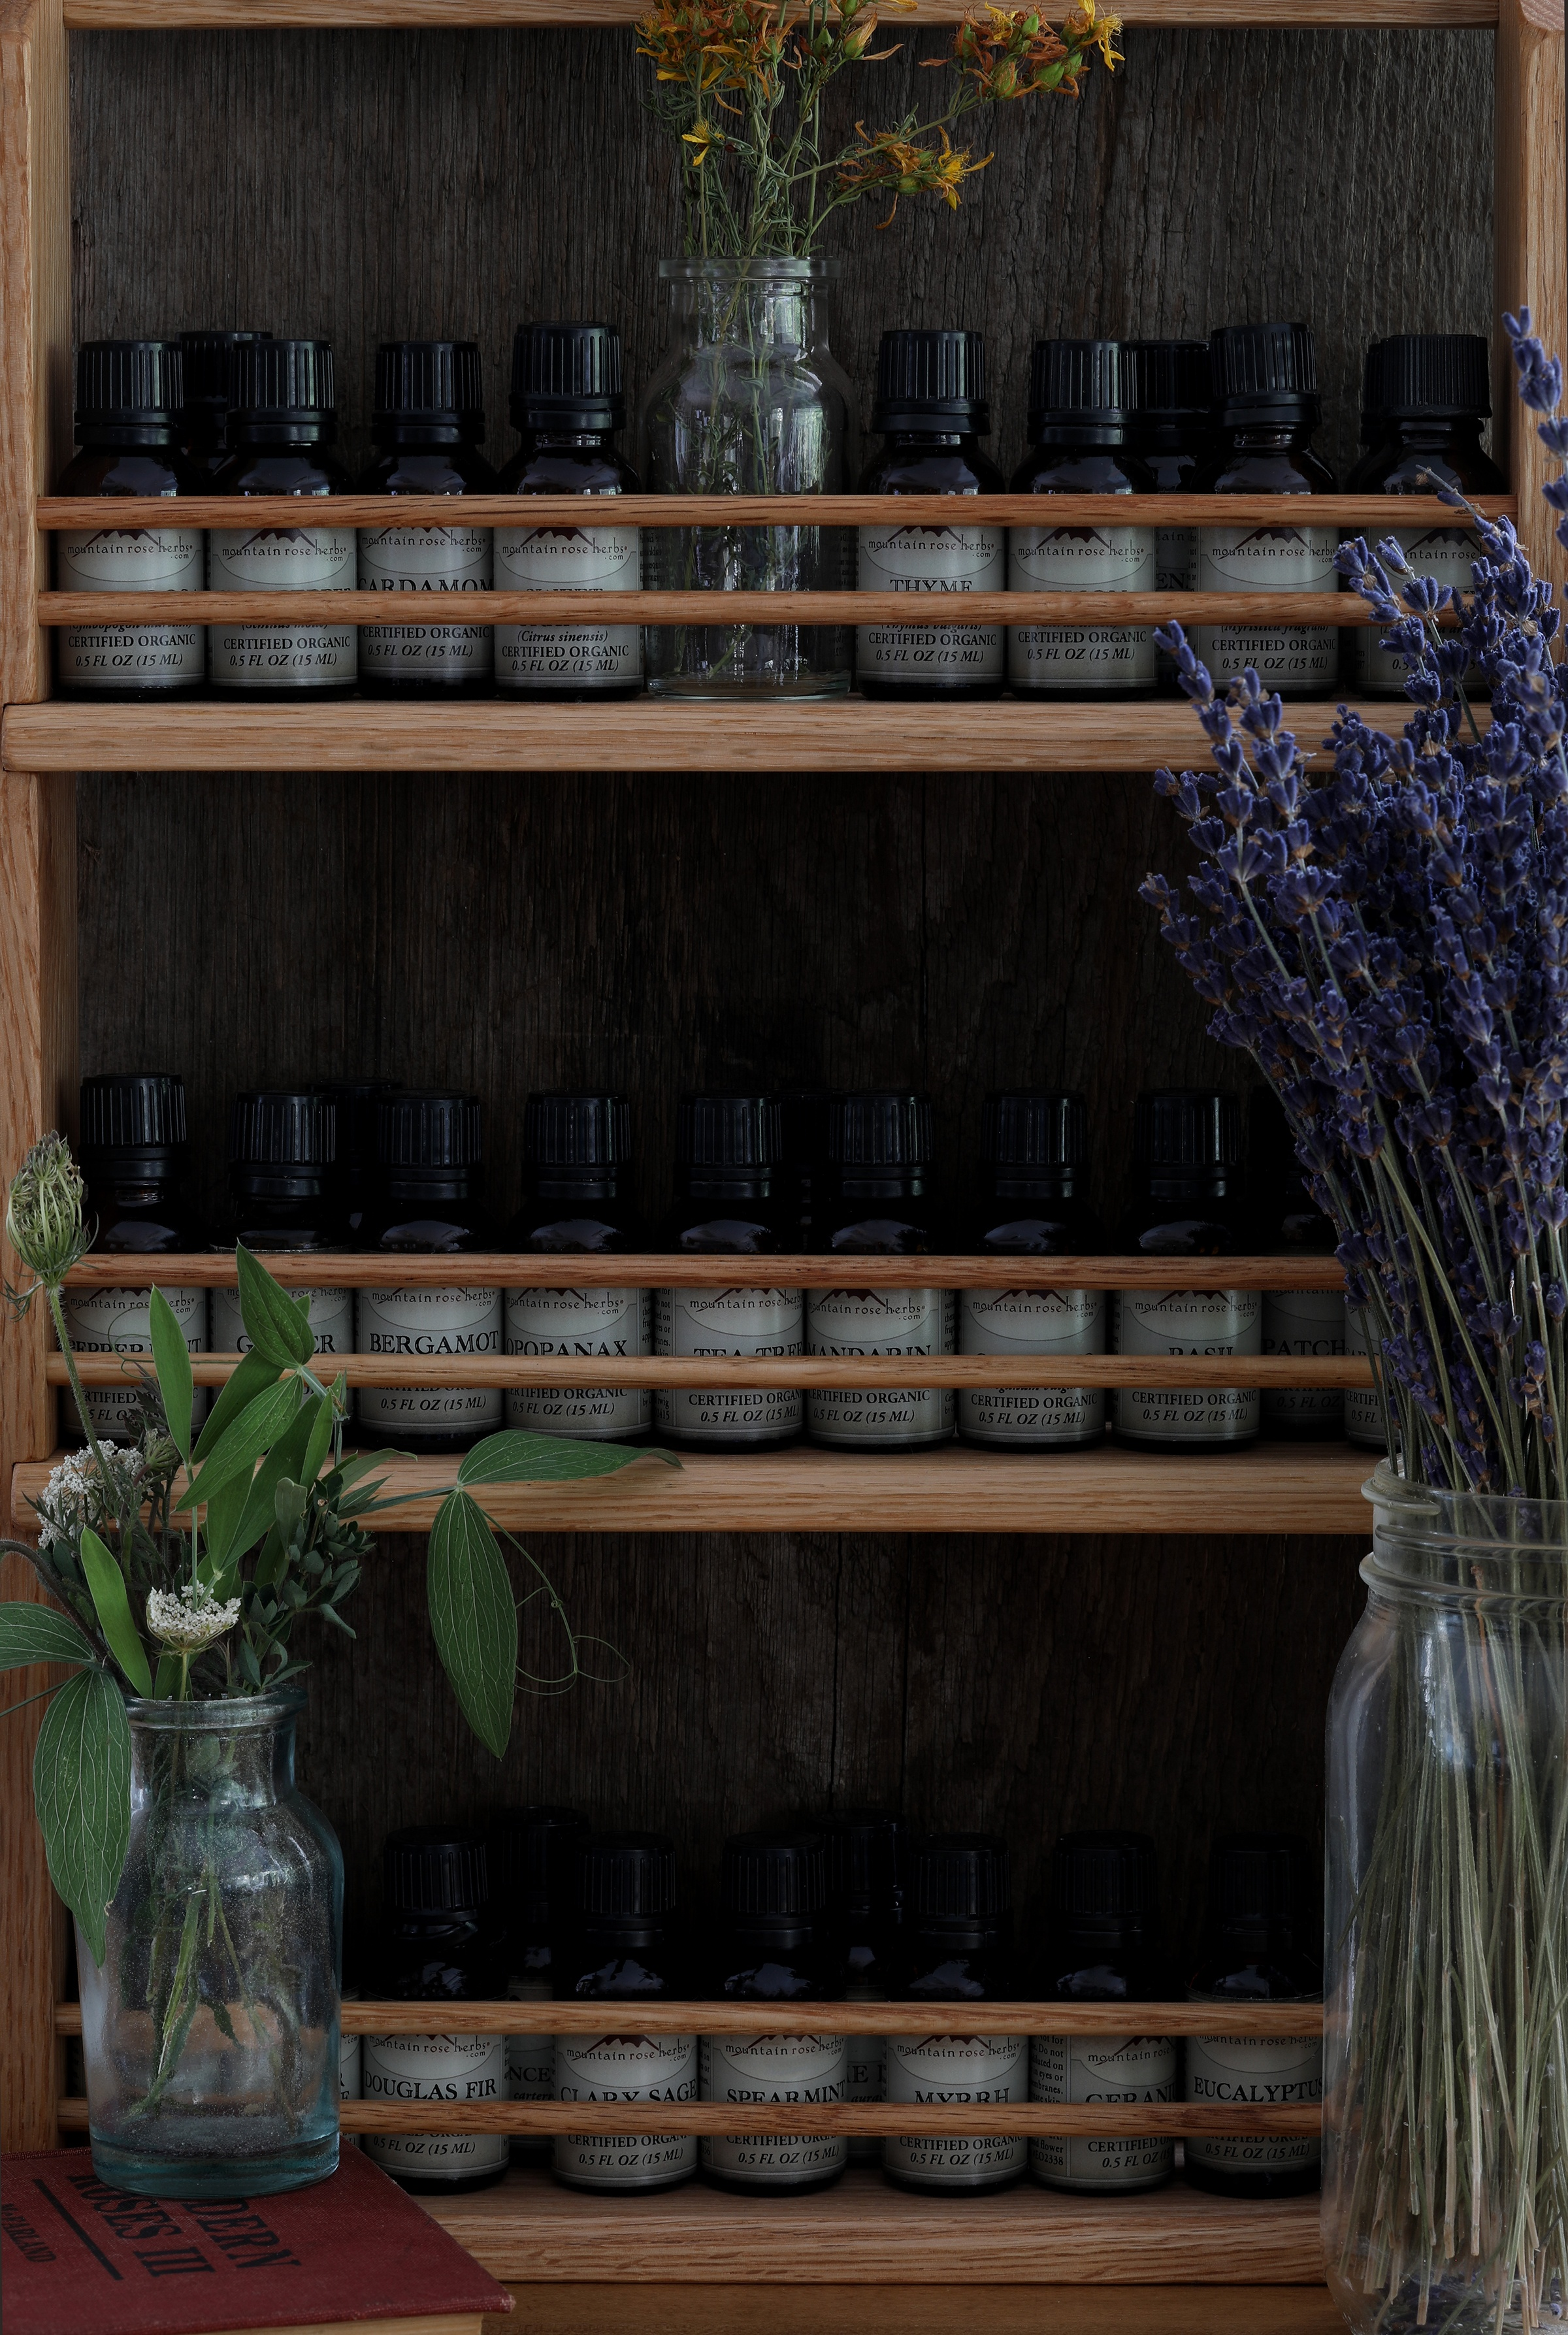 Essential oils stored on a wooden shelf in bottles indoors surrounded by dried herbs in mason jars